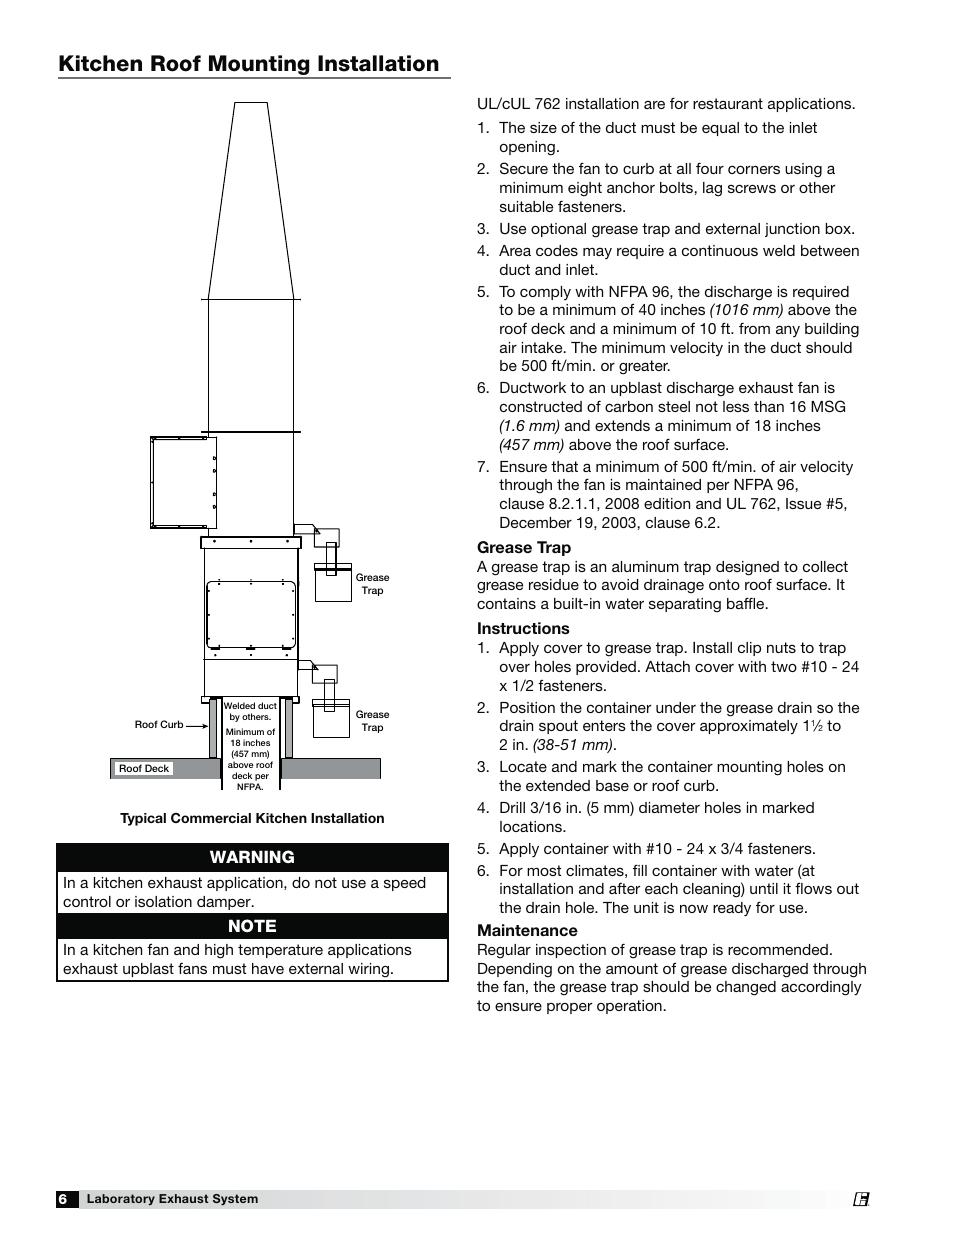 kitchen roof mounting installation, warning greenheck fan Furnace Wire Diagrams Vent Fans